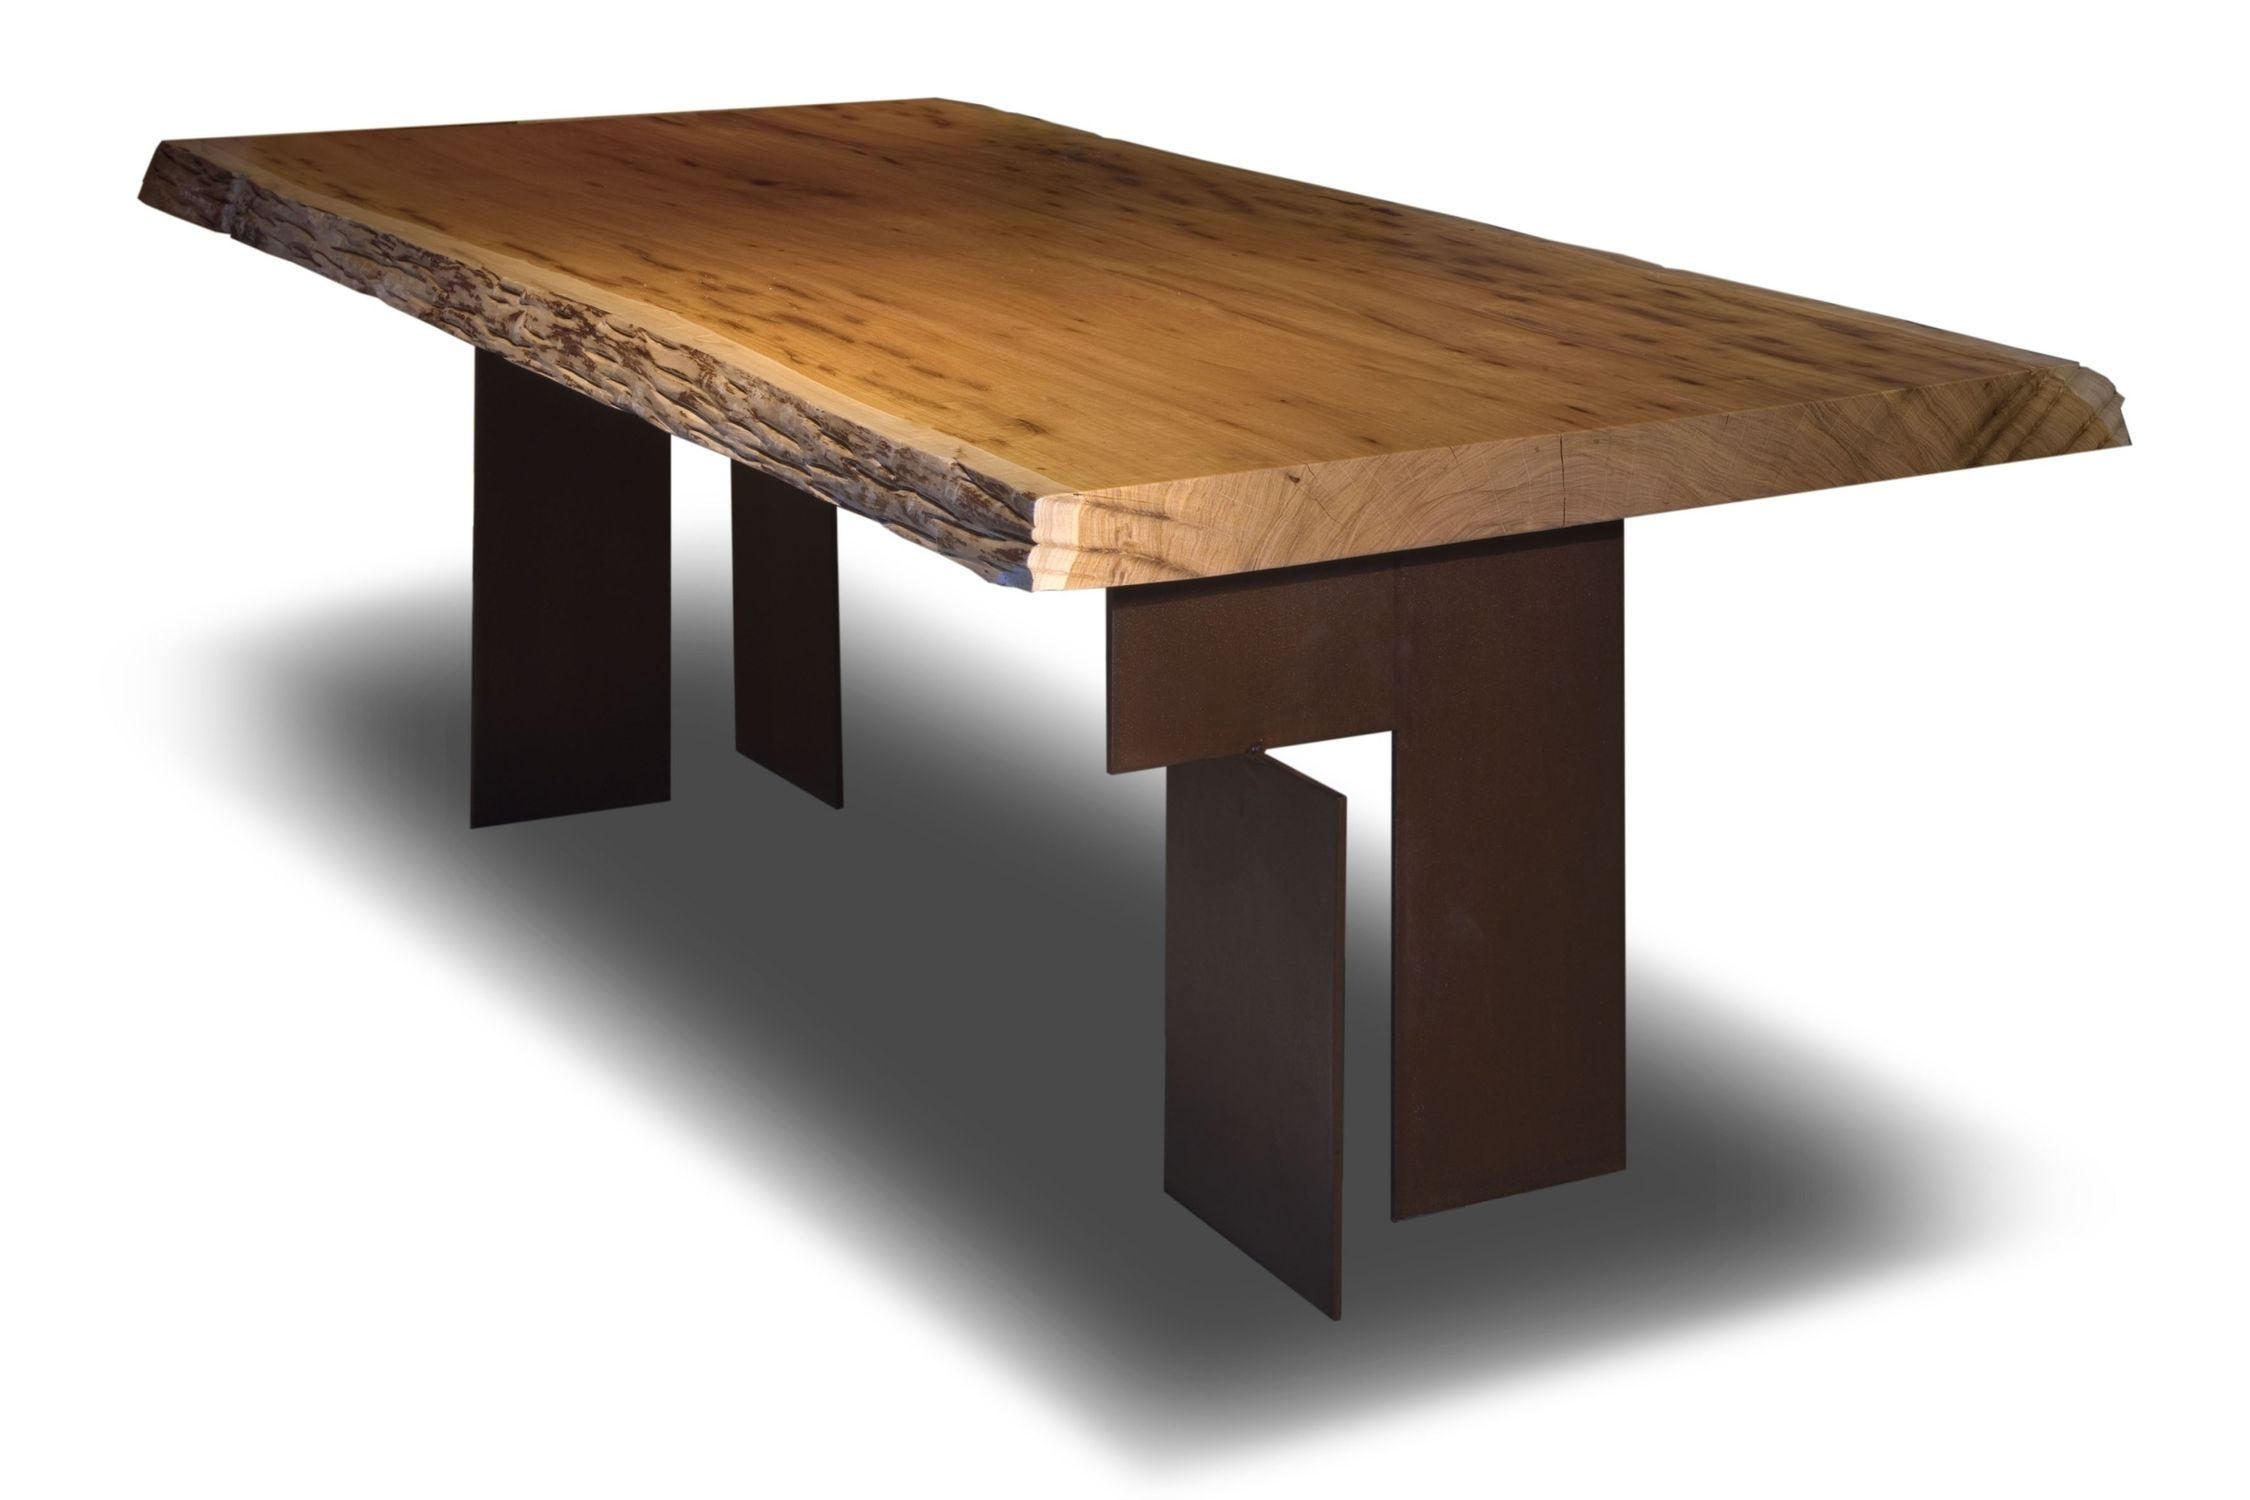 Contemporary table in reclaimed wood - HELENA - Rotsen Furniture